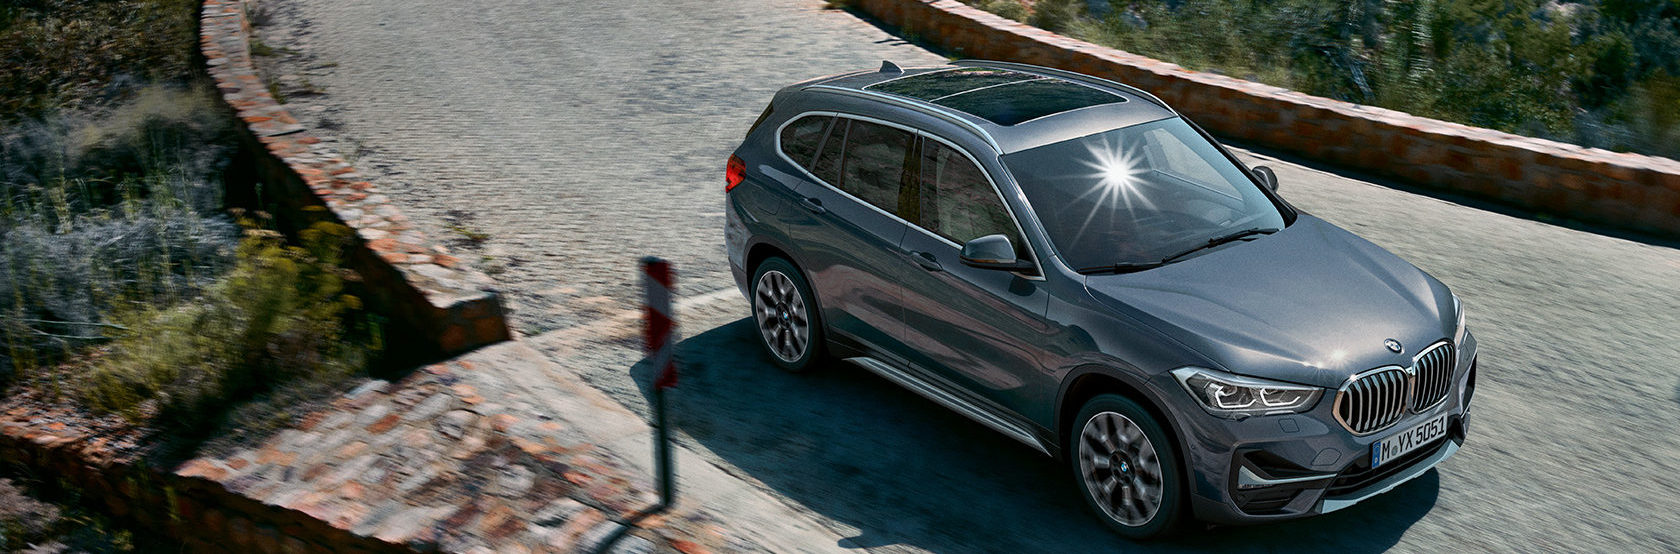 BMW X1 in slate grey driving on cobblestone road, shot from above